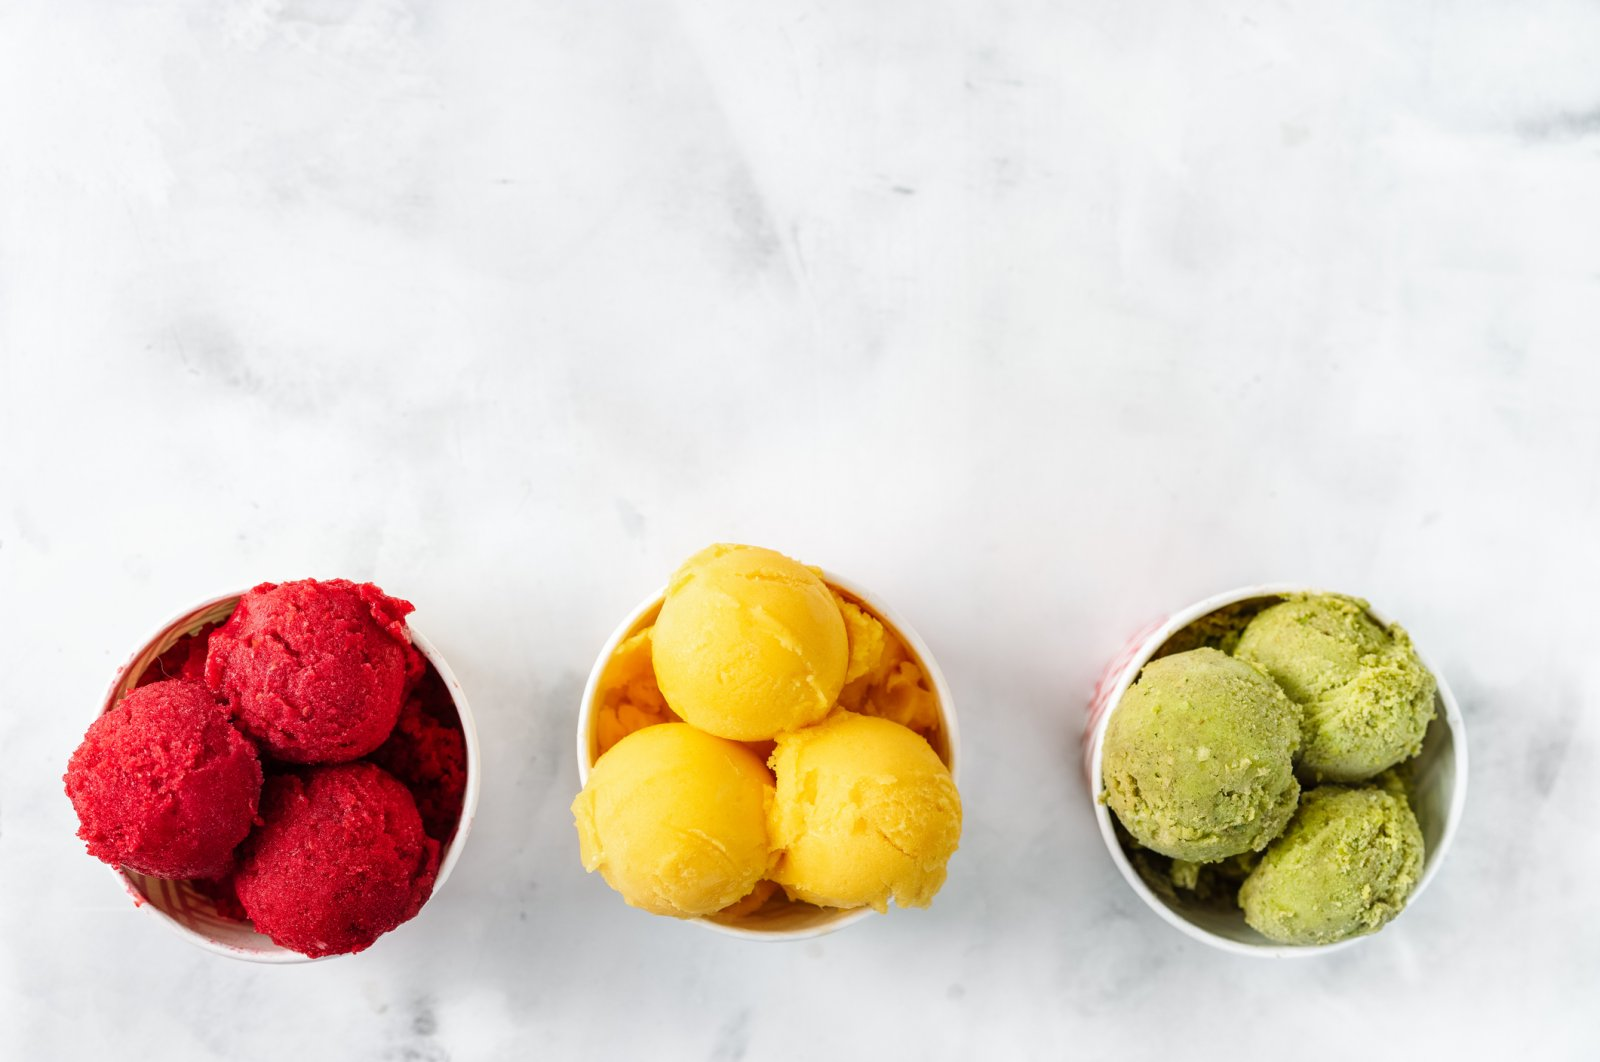 From raspberries and mangoes to avocadoes, you make sorbet out of any fruit you like. (iStock Photo)